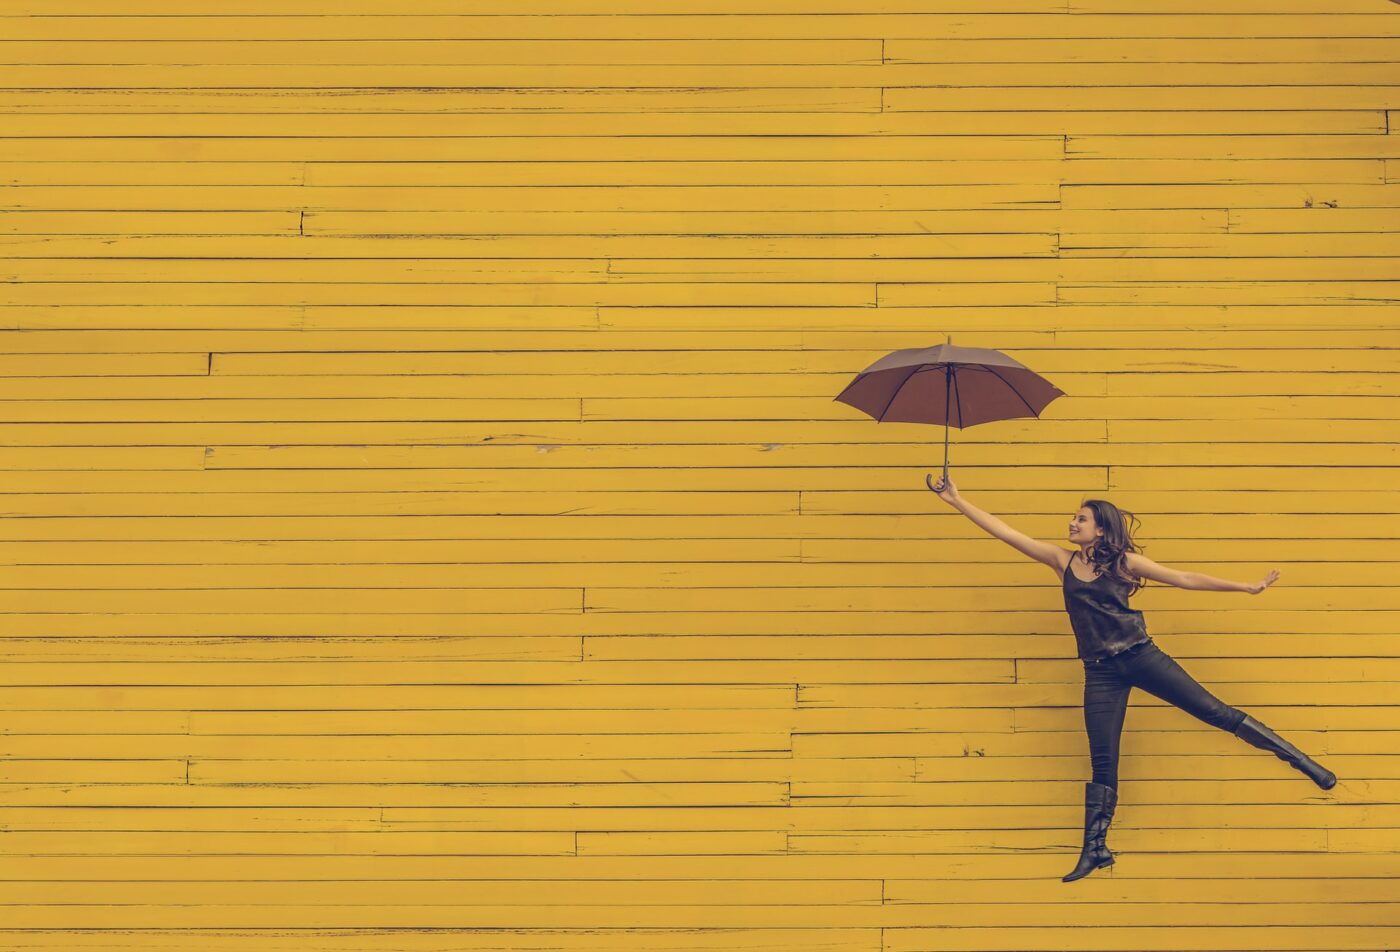 Lady hovering in air with open umbrella against a yellow brick wall